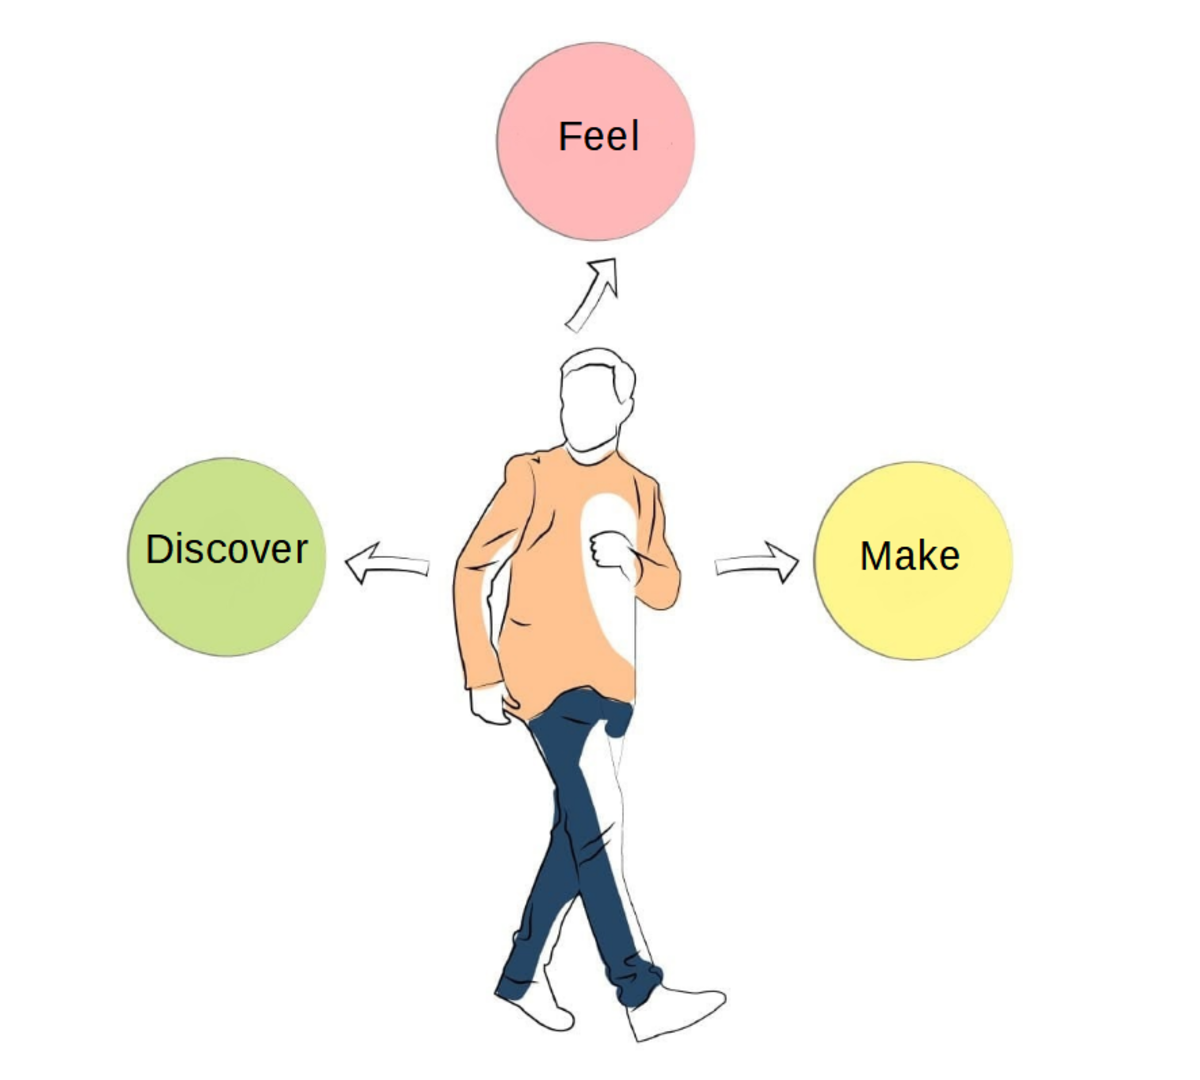 Fig. 4. Stages to the consumer buying process